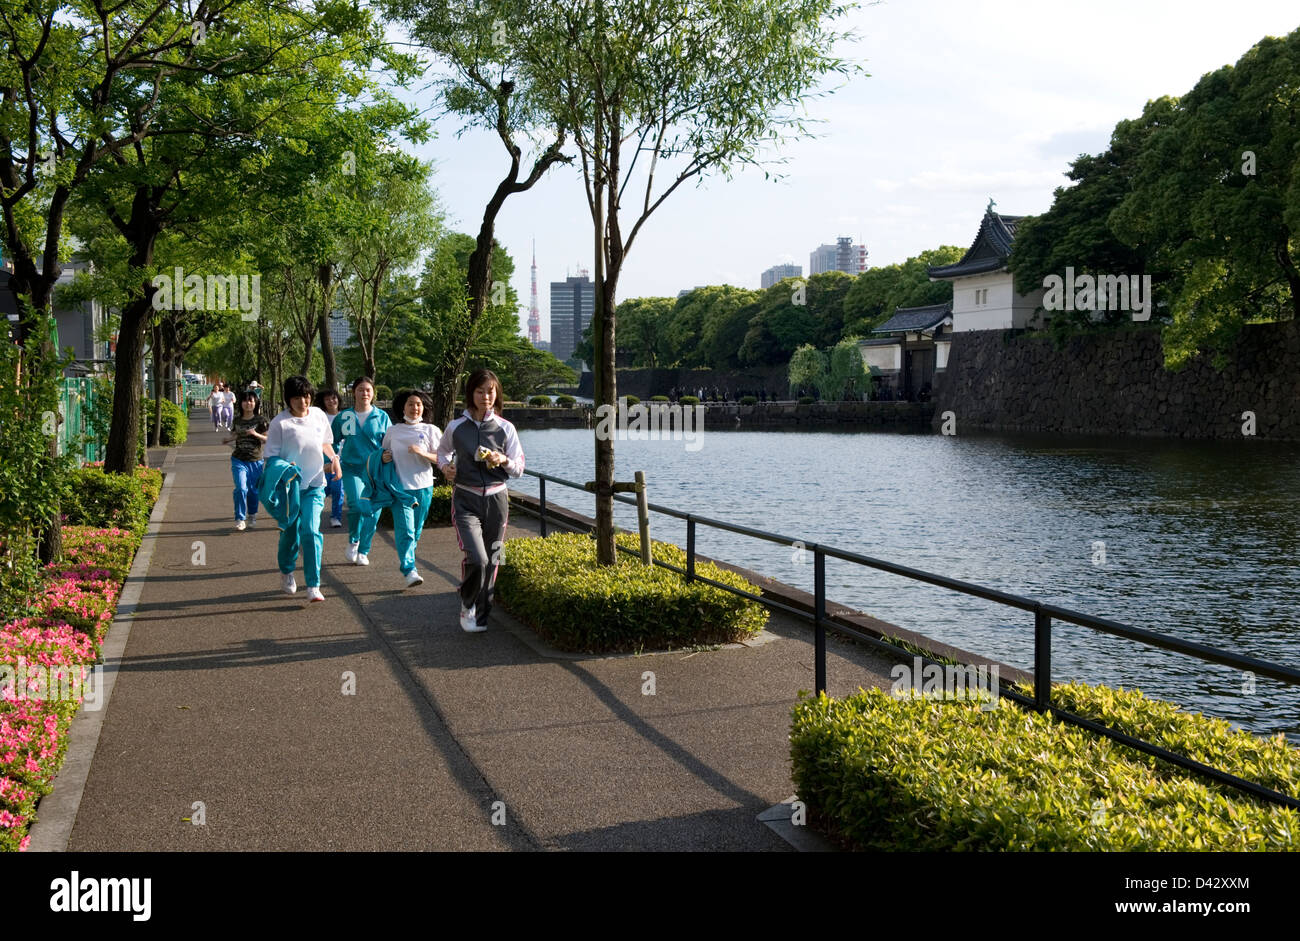 Female joggers taking laps around 5-kilometer outer moat course surrounding Imperial Palace, site of old Edo Castle - Stock Image